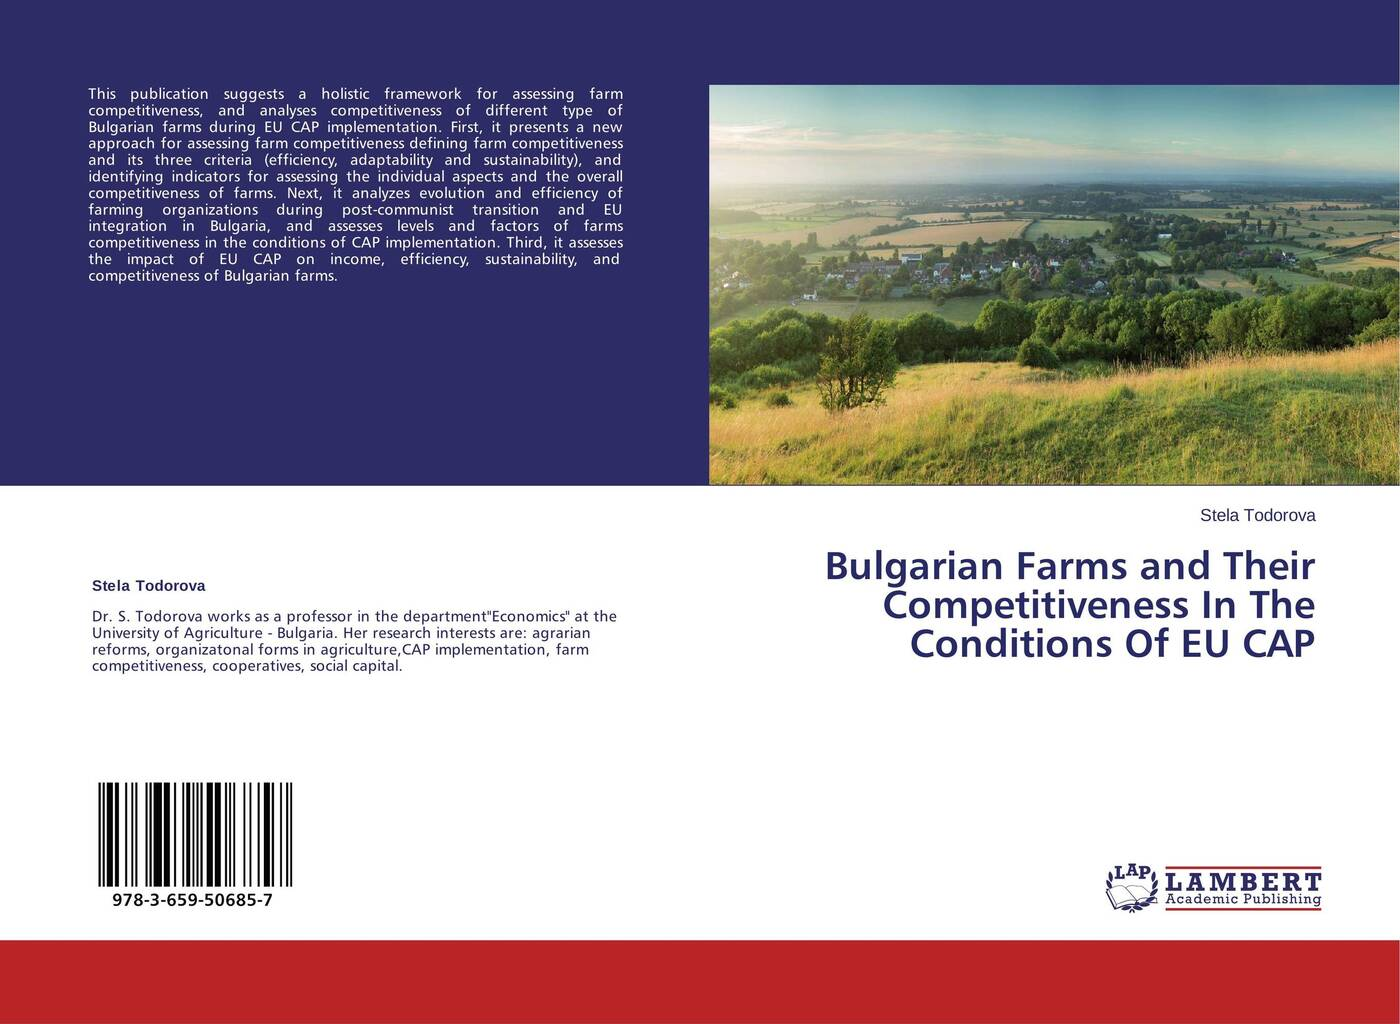 Фото - Stela Todorova Bulgarian Farms and Their Competitiveness In The Conditions Of EU CAP piya das and subhrabaran das competitiveness and role of research and development